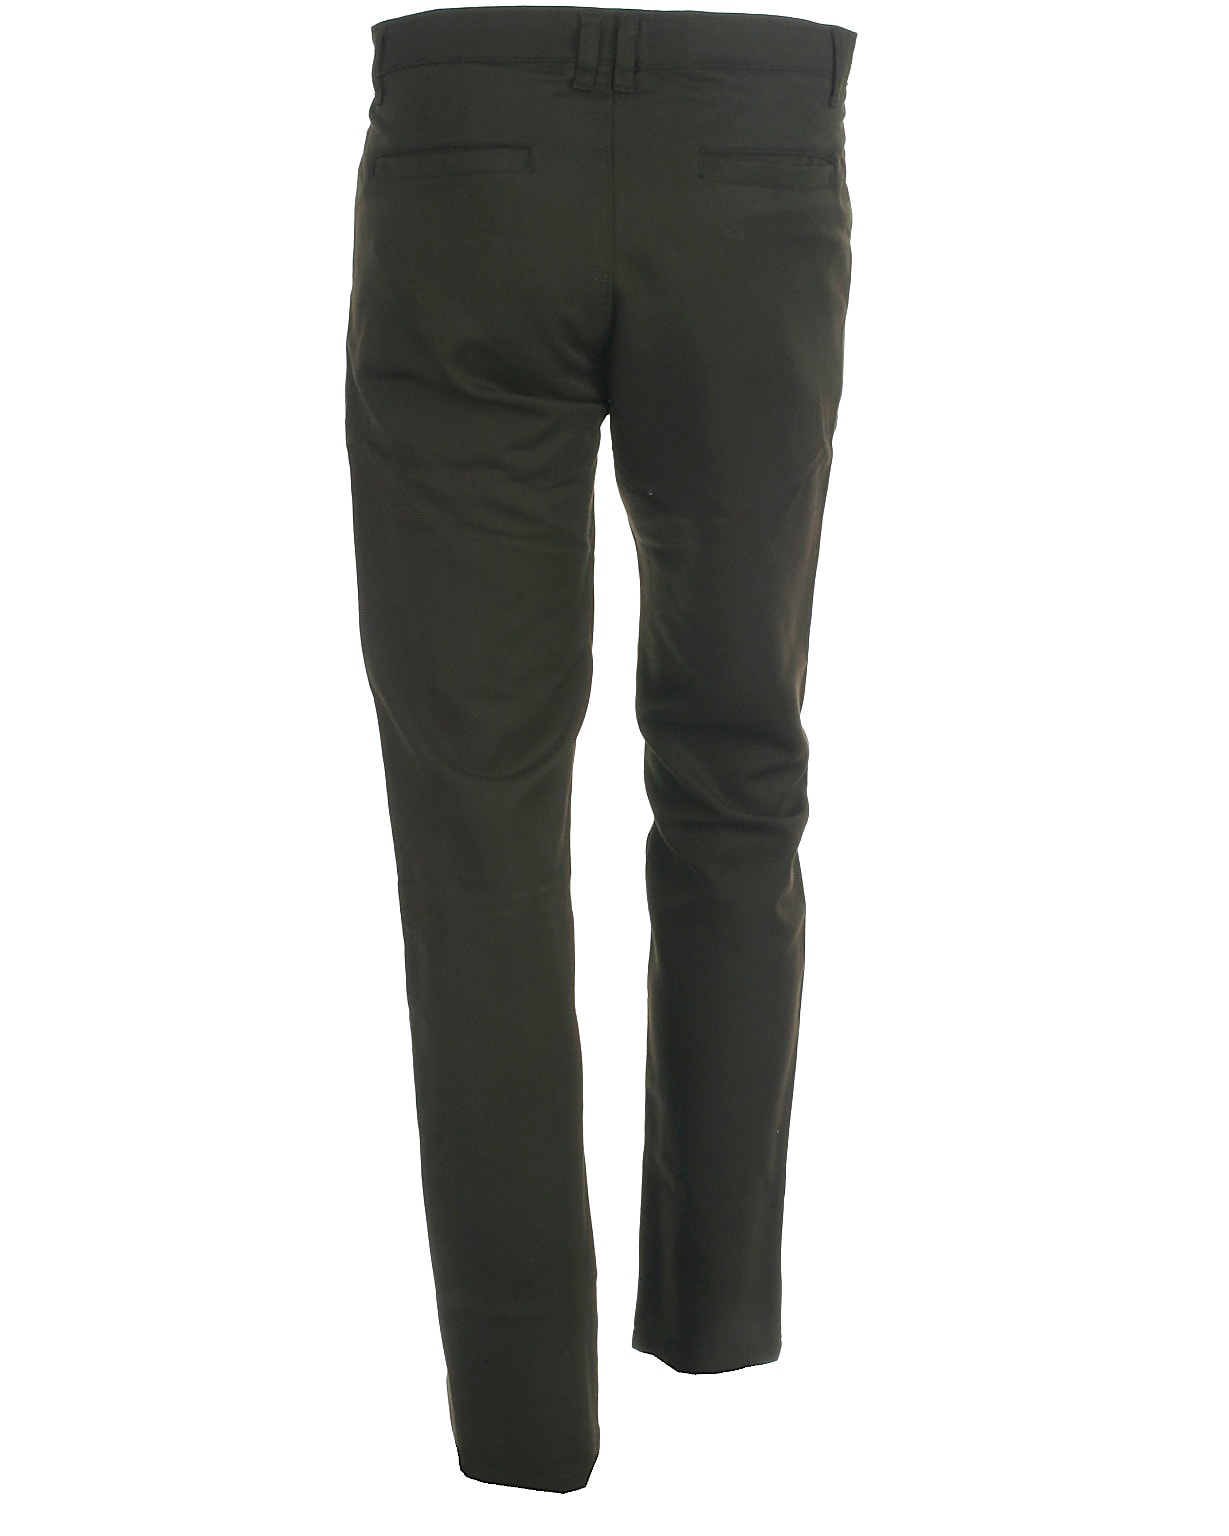 Image of Cost:bart chino pant, Chris, army